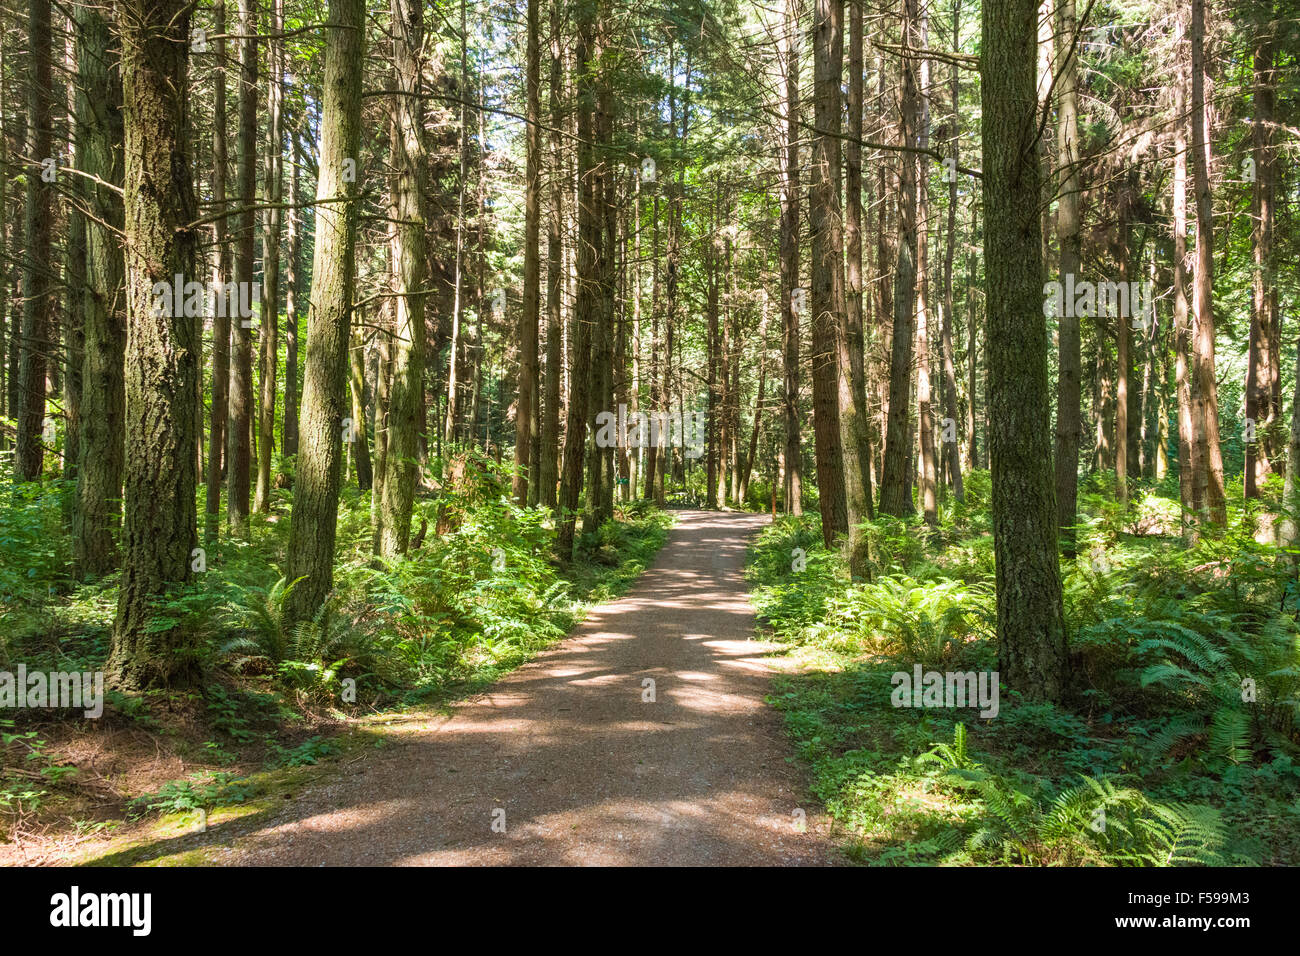 Forest trail in the interior of Stanley Park, Vancouver, BC, Canada. - Stock Image